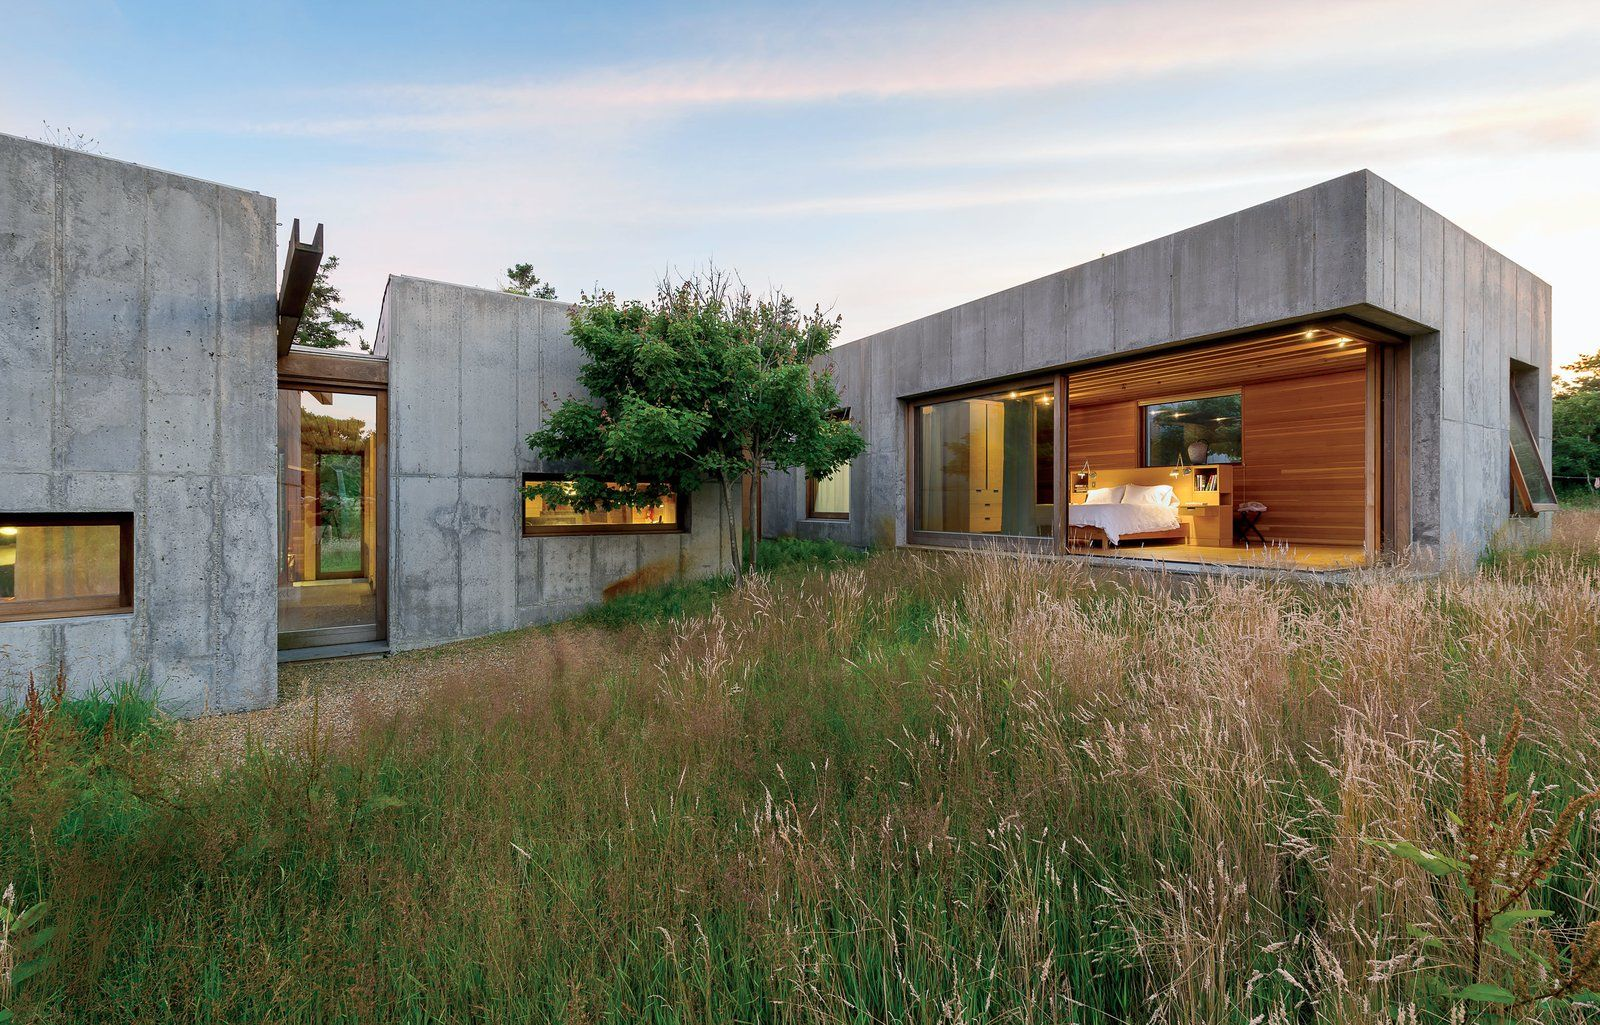 Superior Concrete Kit Homes #1: Despite Being Set In Concrete, An Idyllic Modular Retreat Is Built To Go  With The